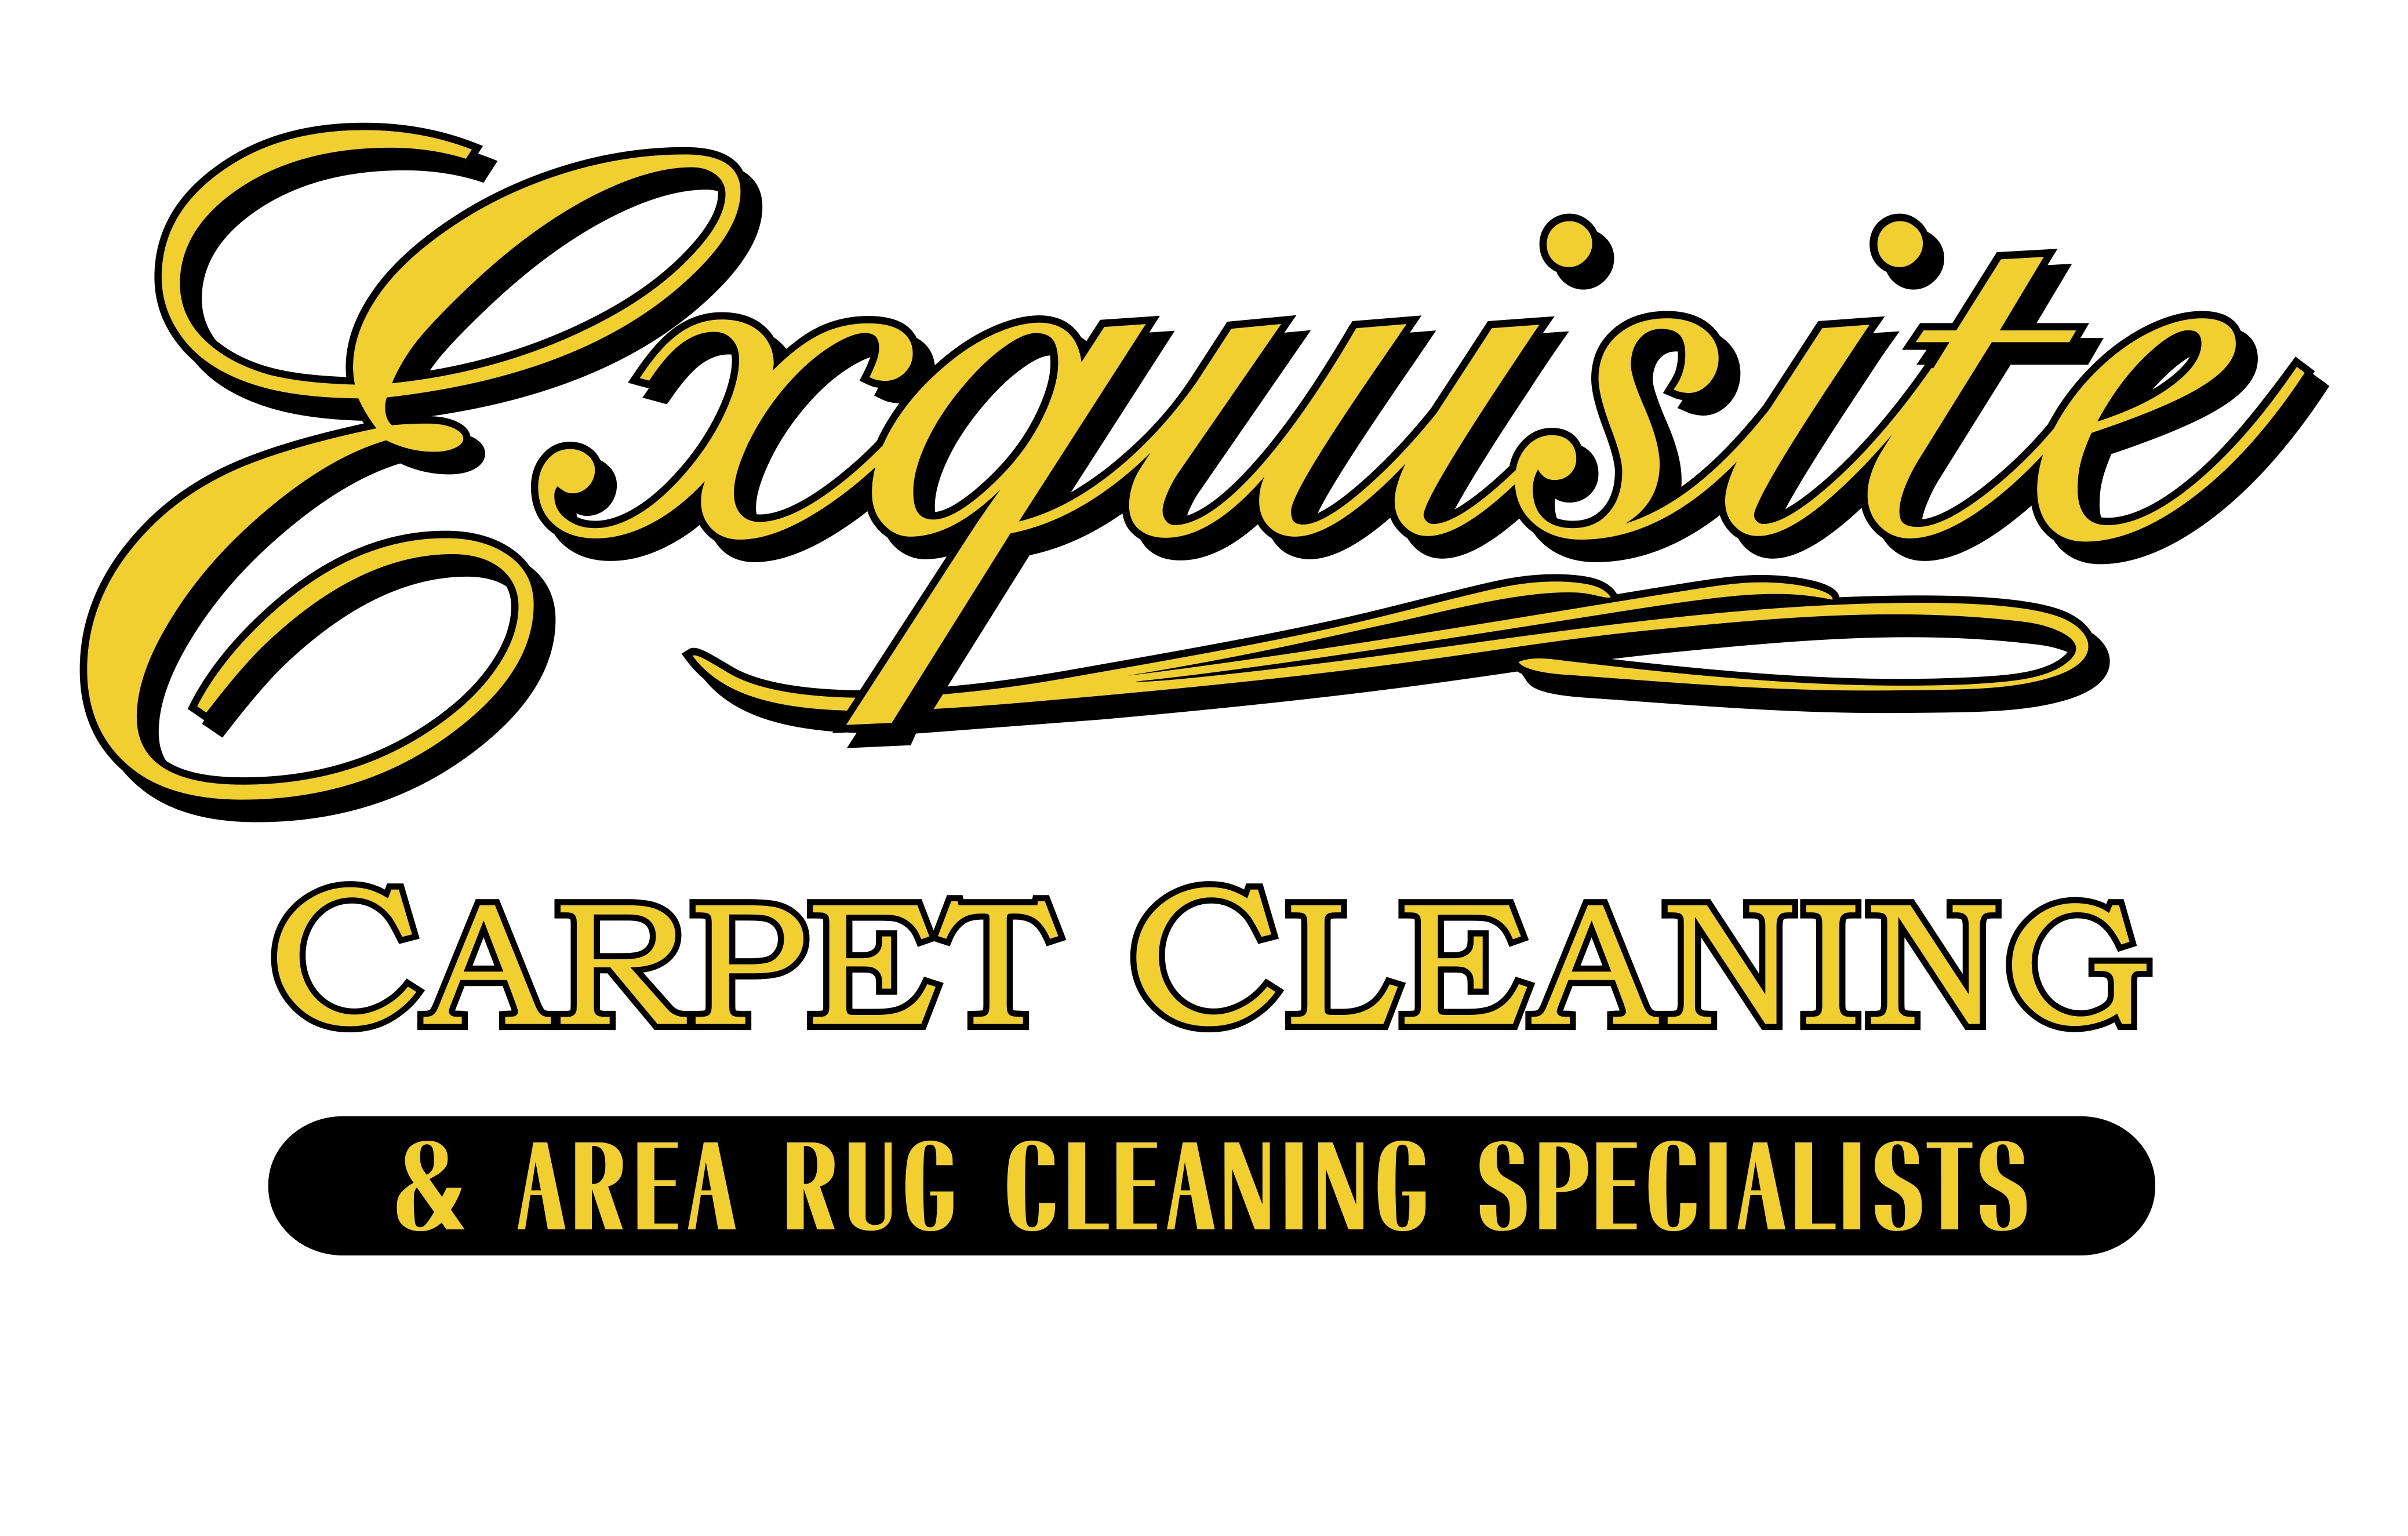 Nicole E Gave Exquisite Carpet Cleaning A 5 Star Review On